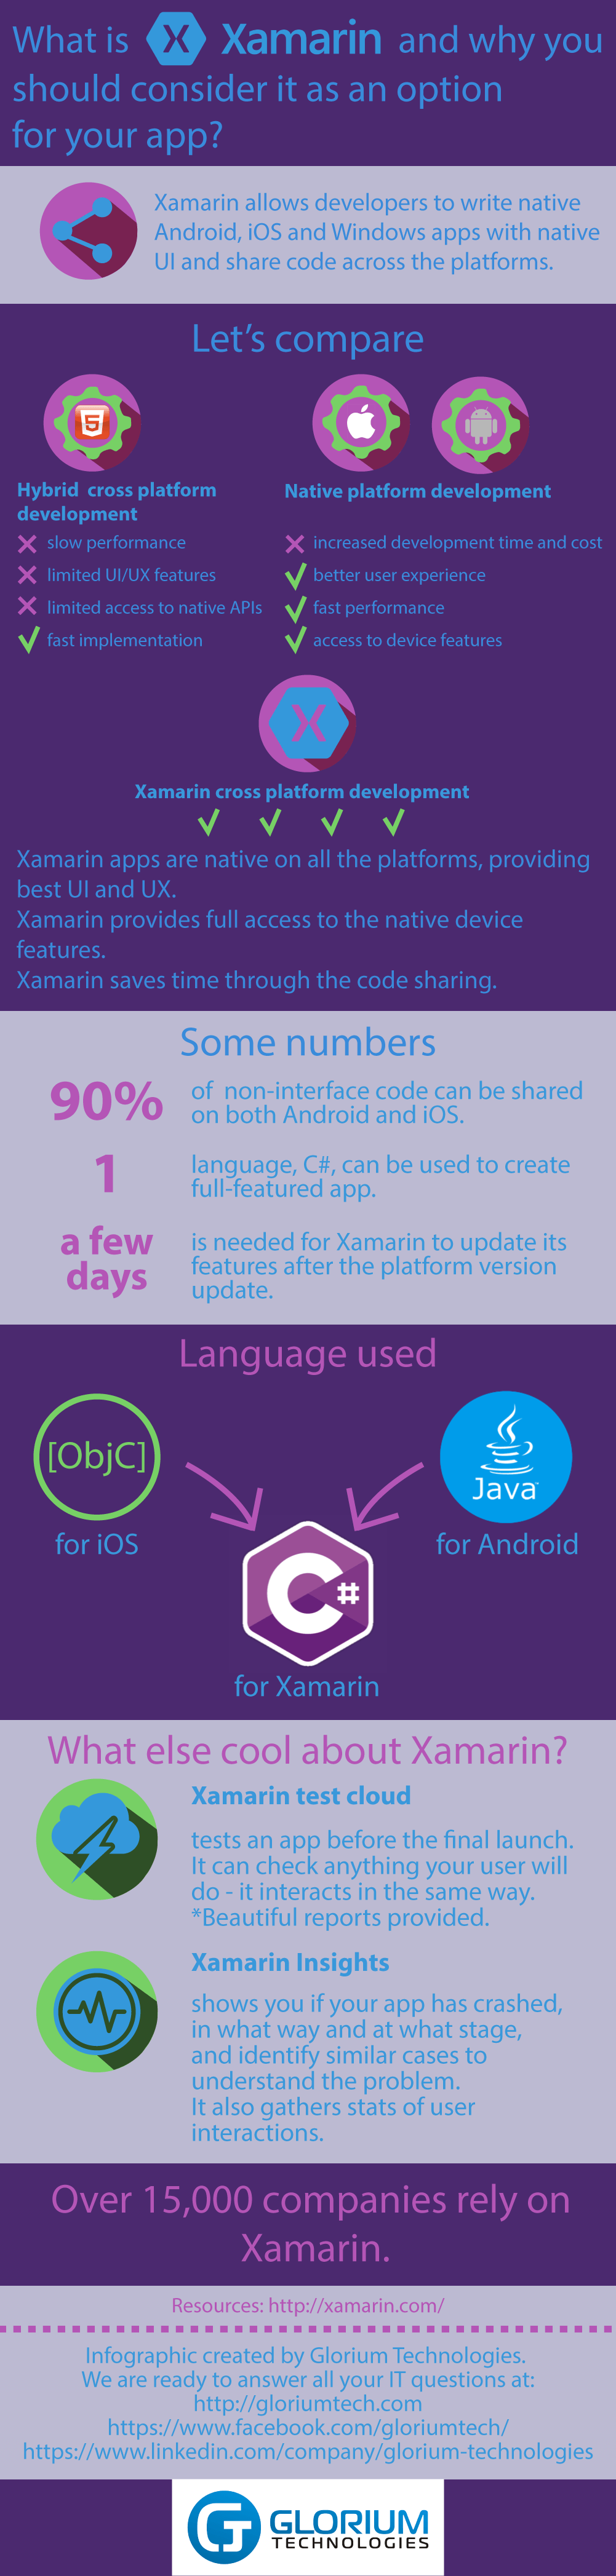 What-Is-Xamarin-And-Why-You-Should-Consider-It-As-An-Option-For-Your-App